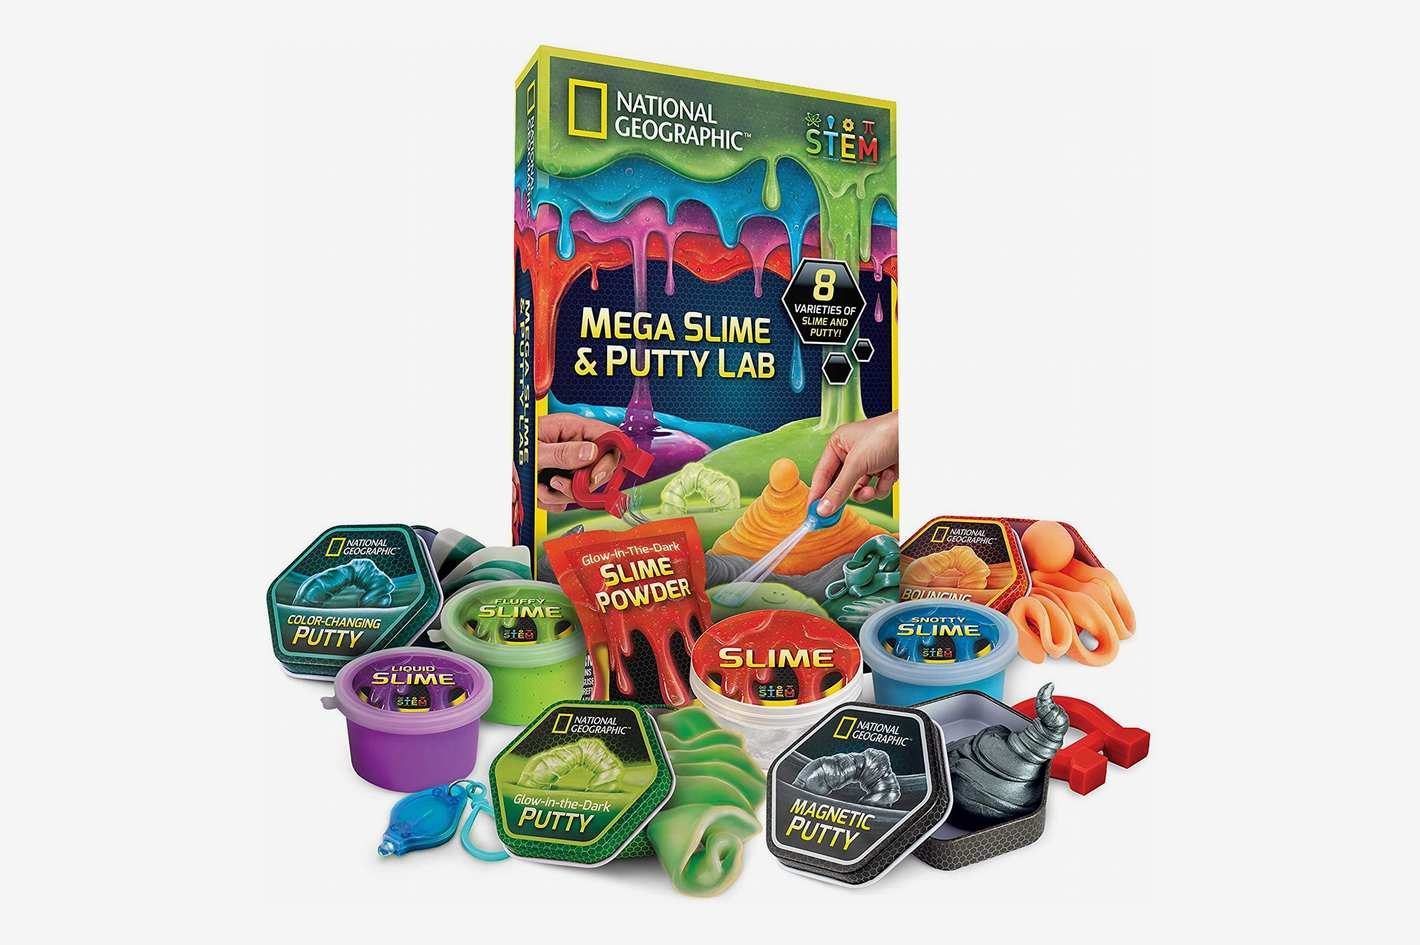 NATIONAL GEOGRAPHIC Mega Slime Kit & Putty Lab - 4 Types of Amazing Slime